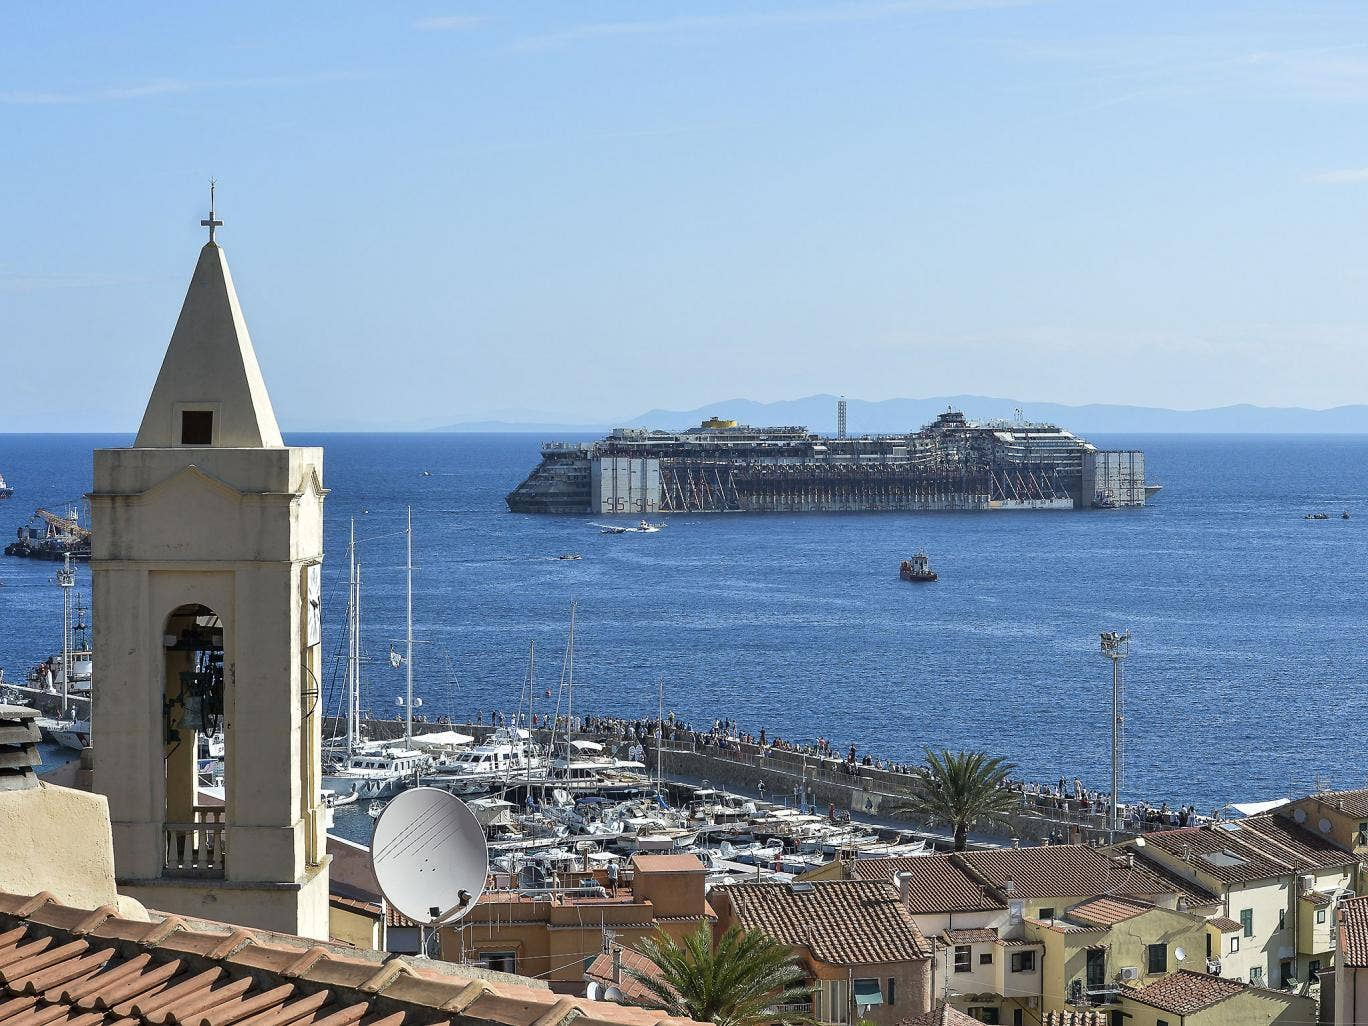 The wreck of the Costa Concordia is towed away from Giglio more than two-and-a-half-years after it sunk. In the foreground is the steeple of the church where many of the survivors were brought for refuge on 13 January 2012